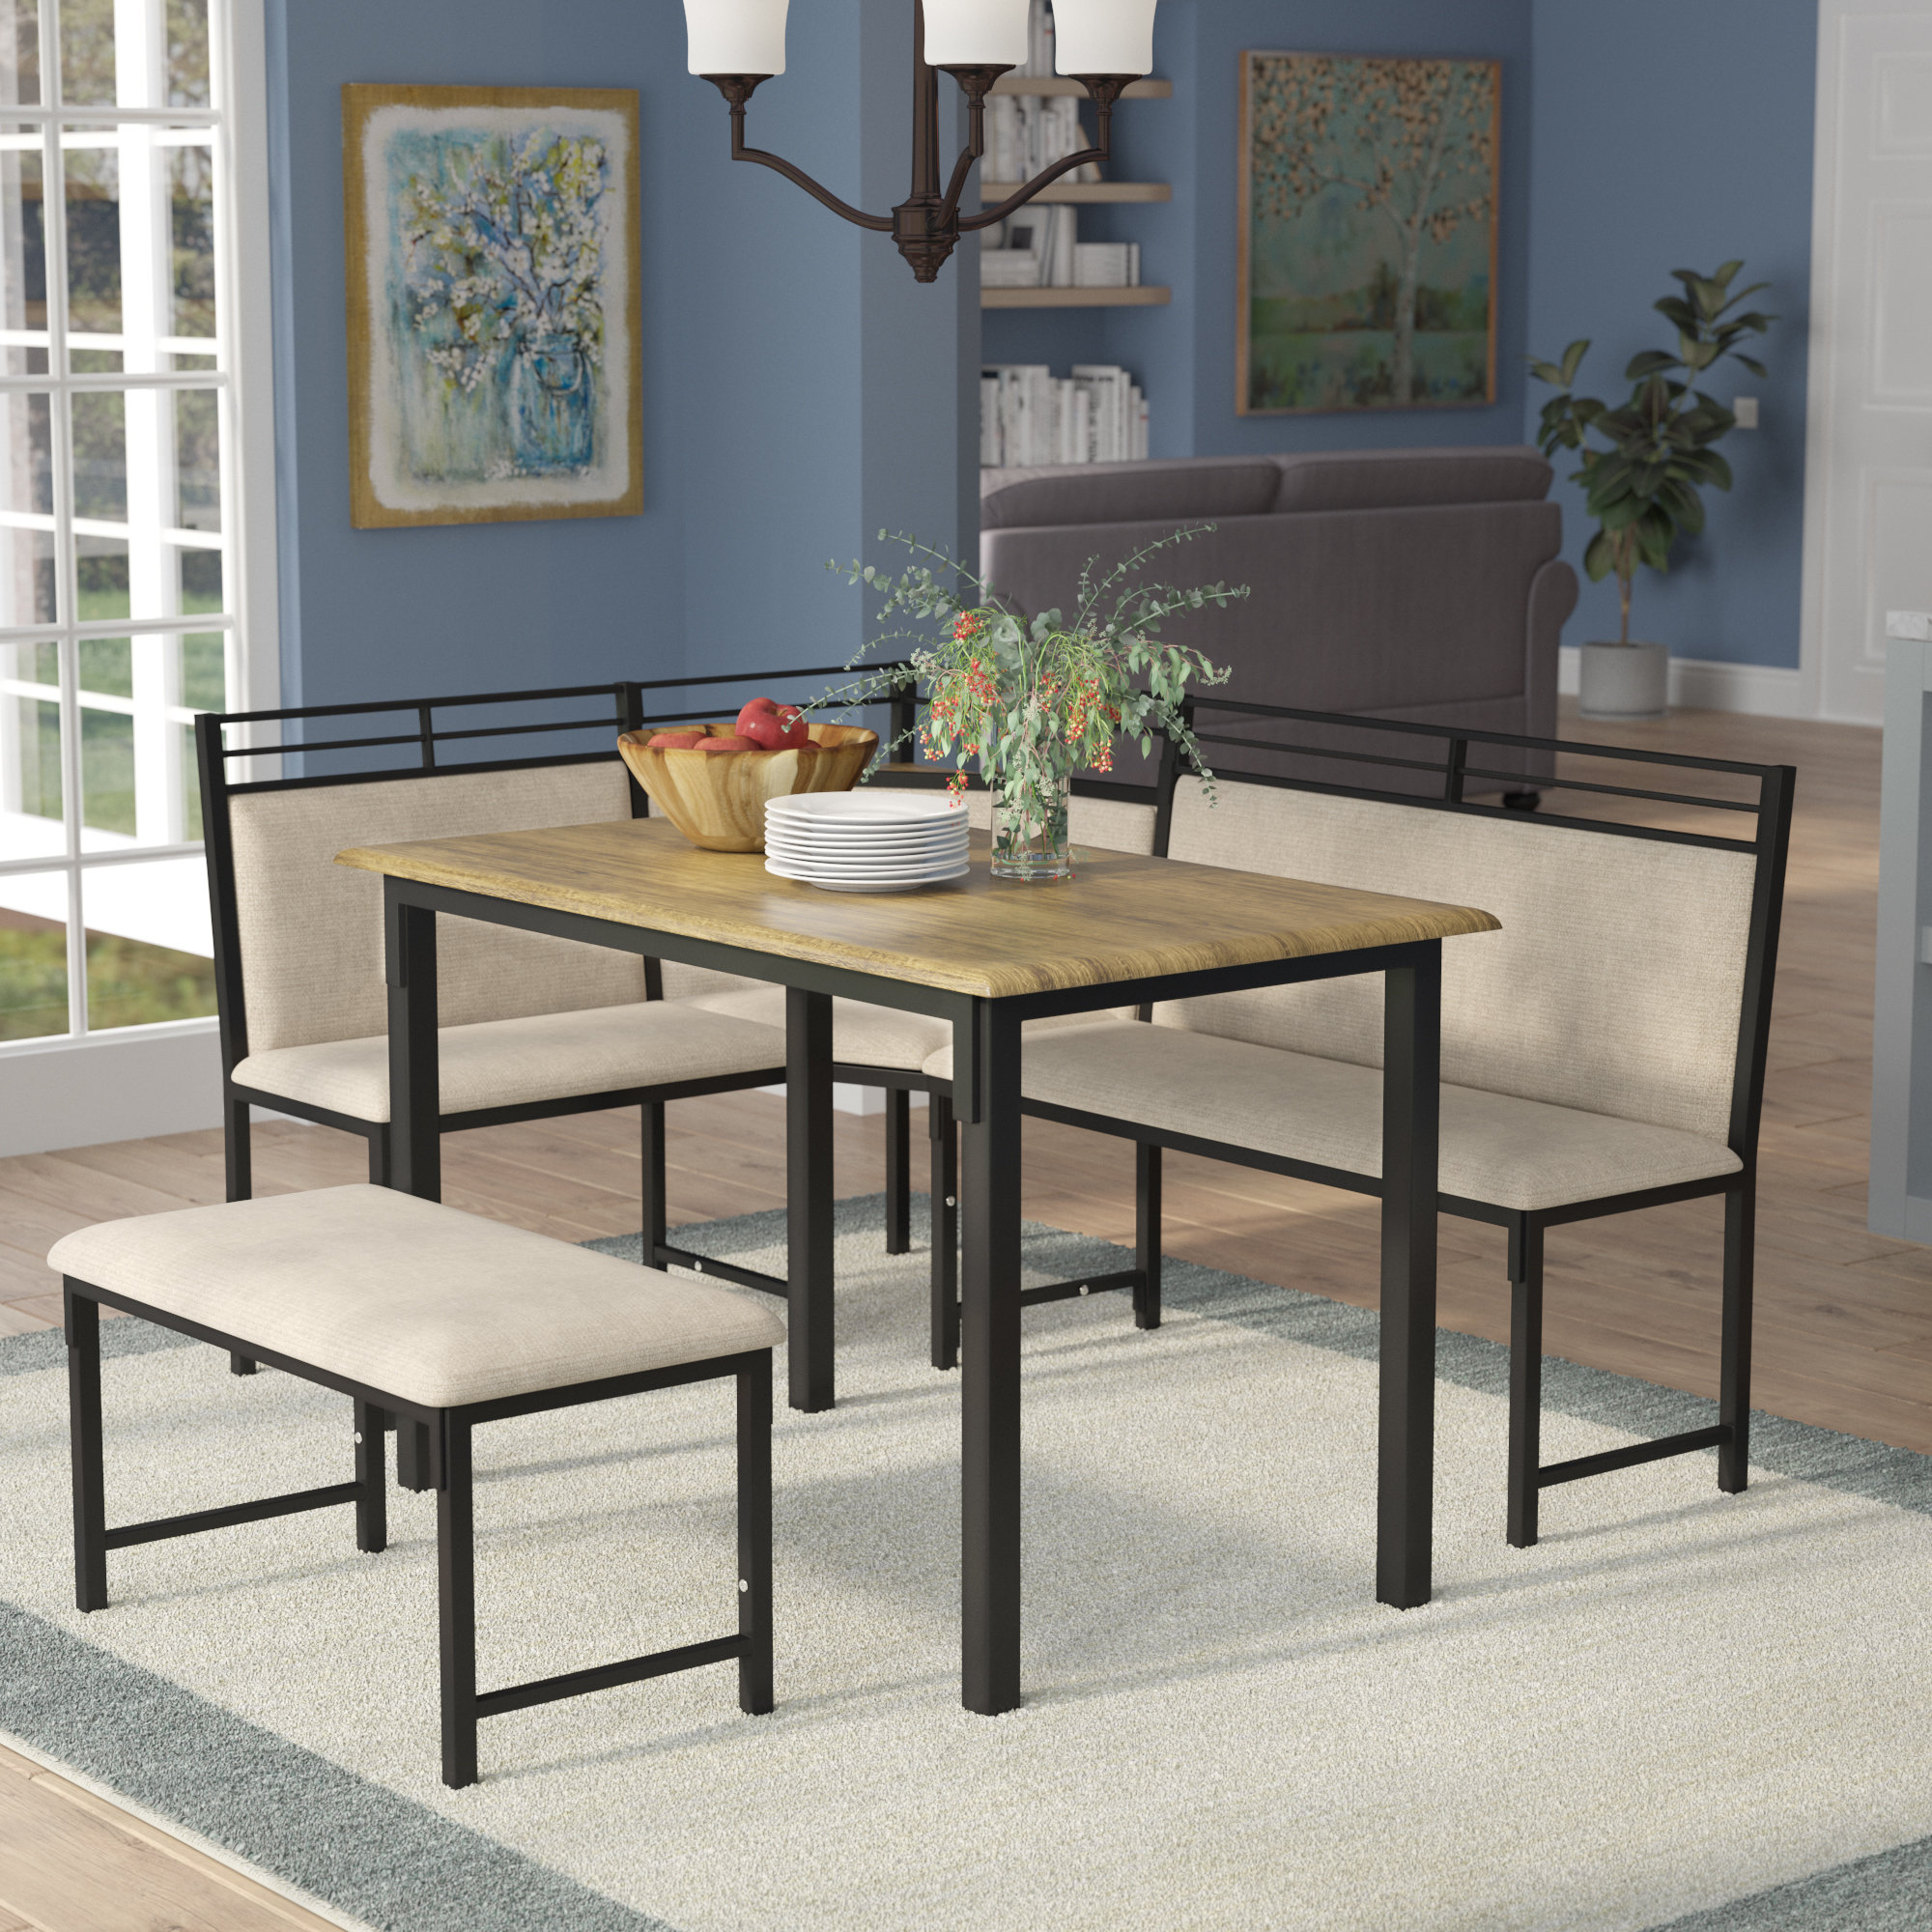 Isolde 3 Piece Dining Sets Throughout Popular Red Barrel Studio Moonachie Corner 3 Piece Dining Set & Reviews (View 6 of 25)